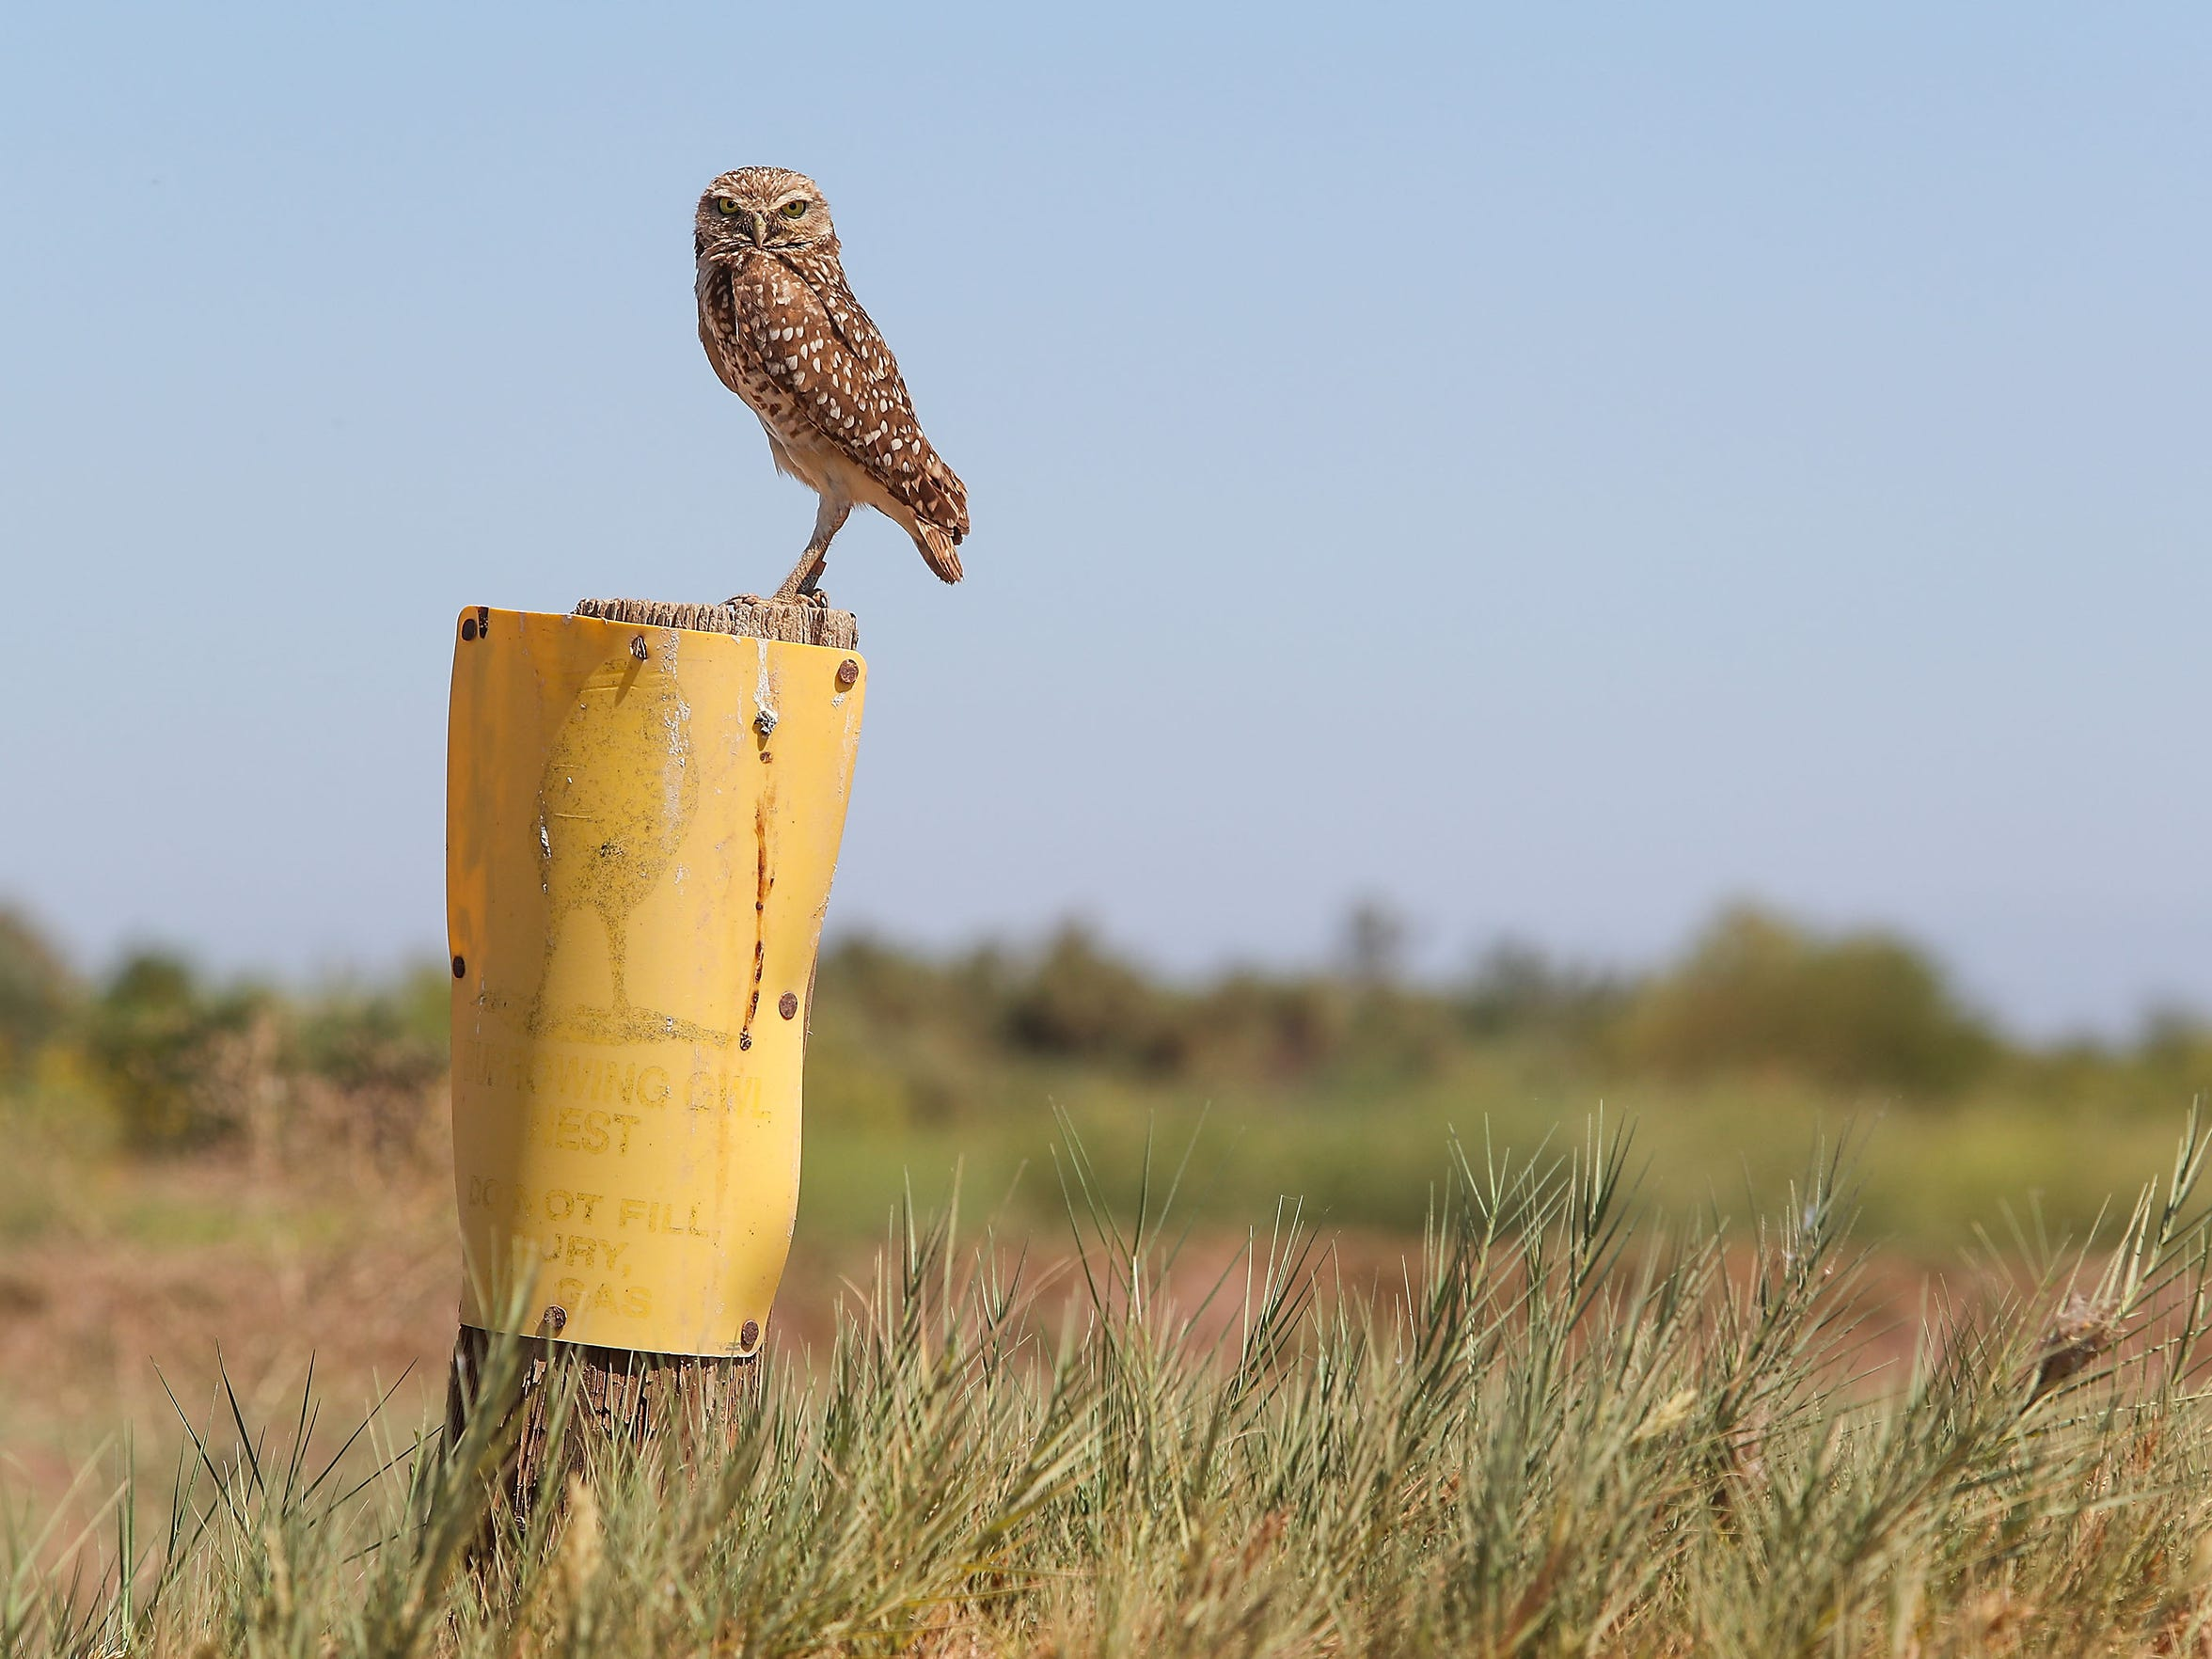 A burrowing owl at the Salton Sea, June 11, 2018.